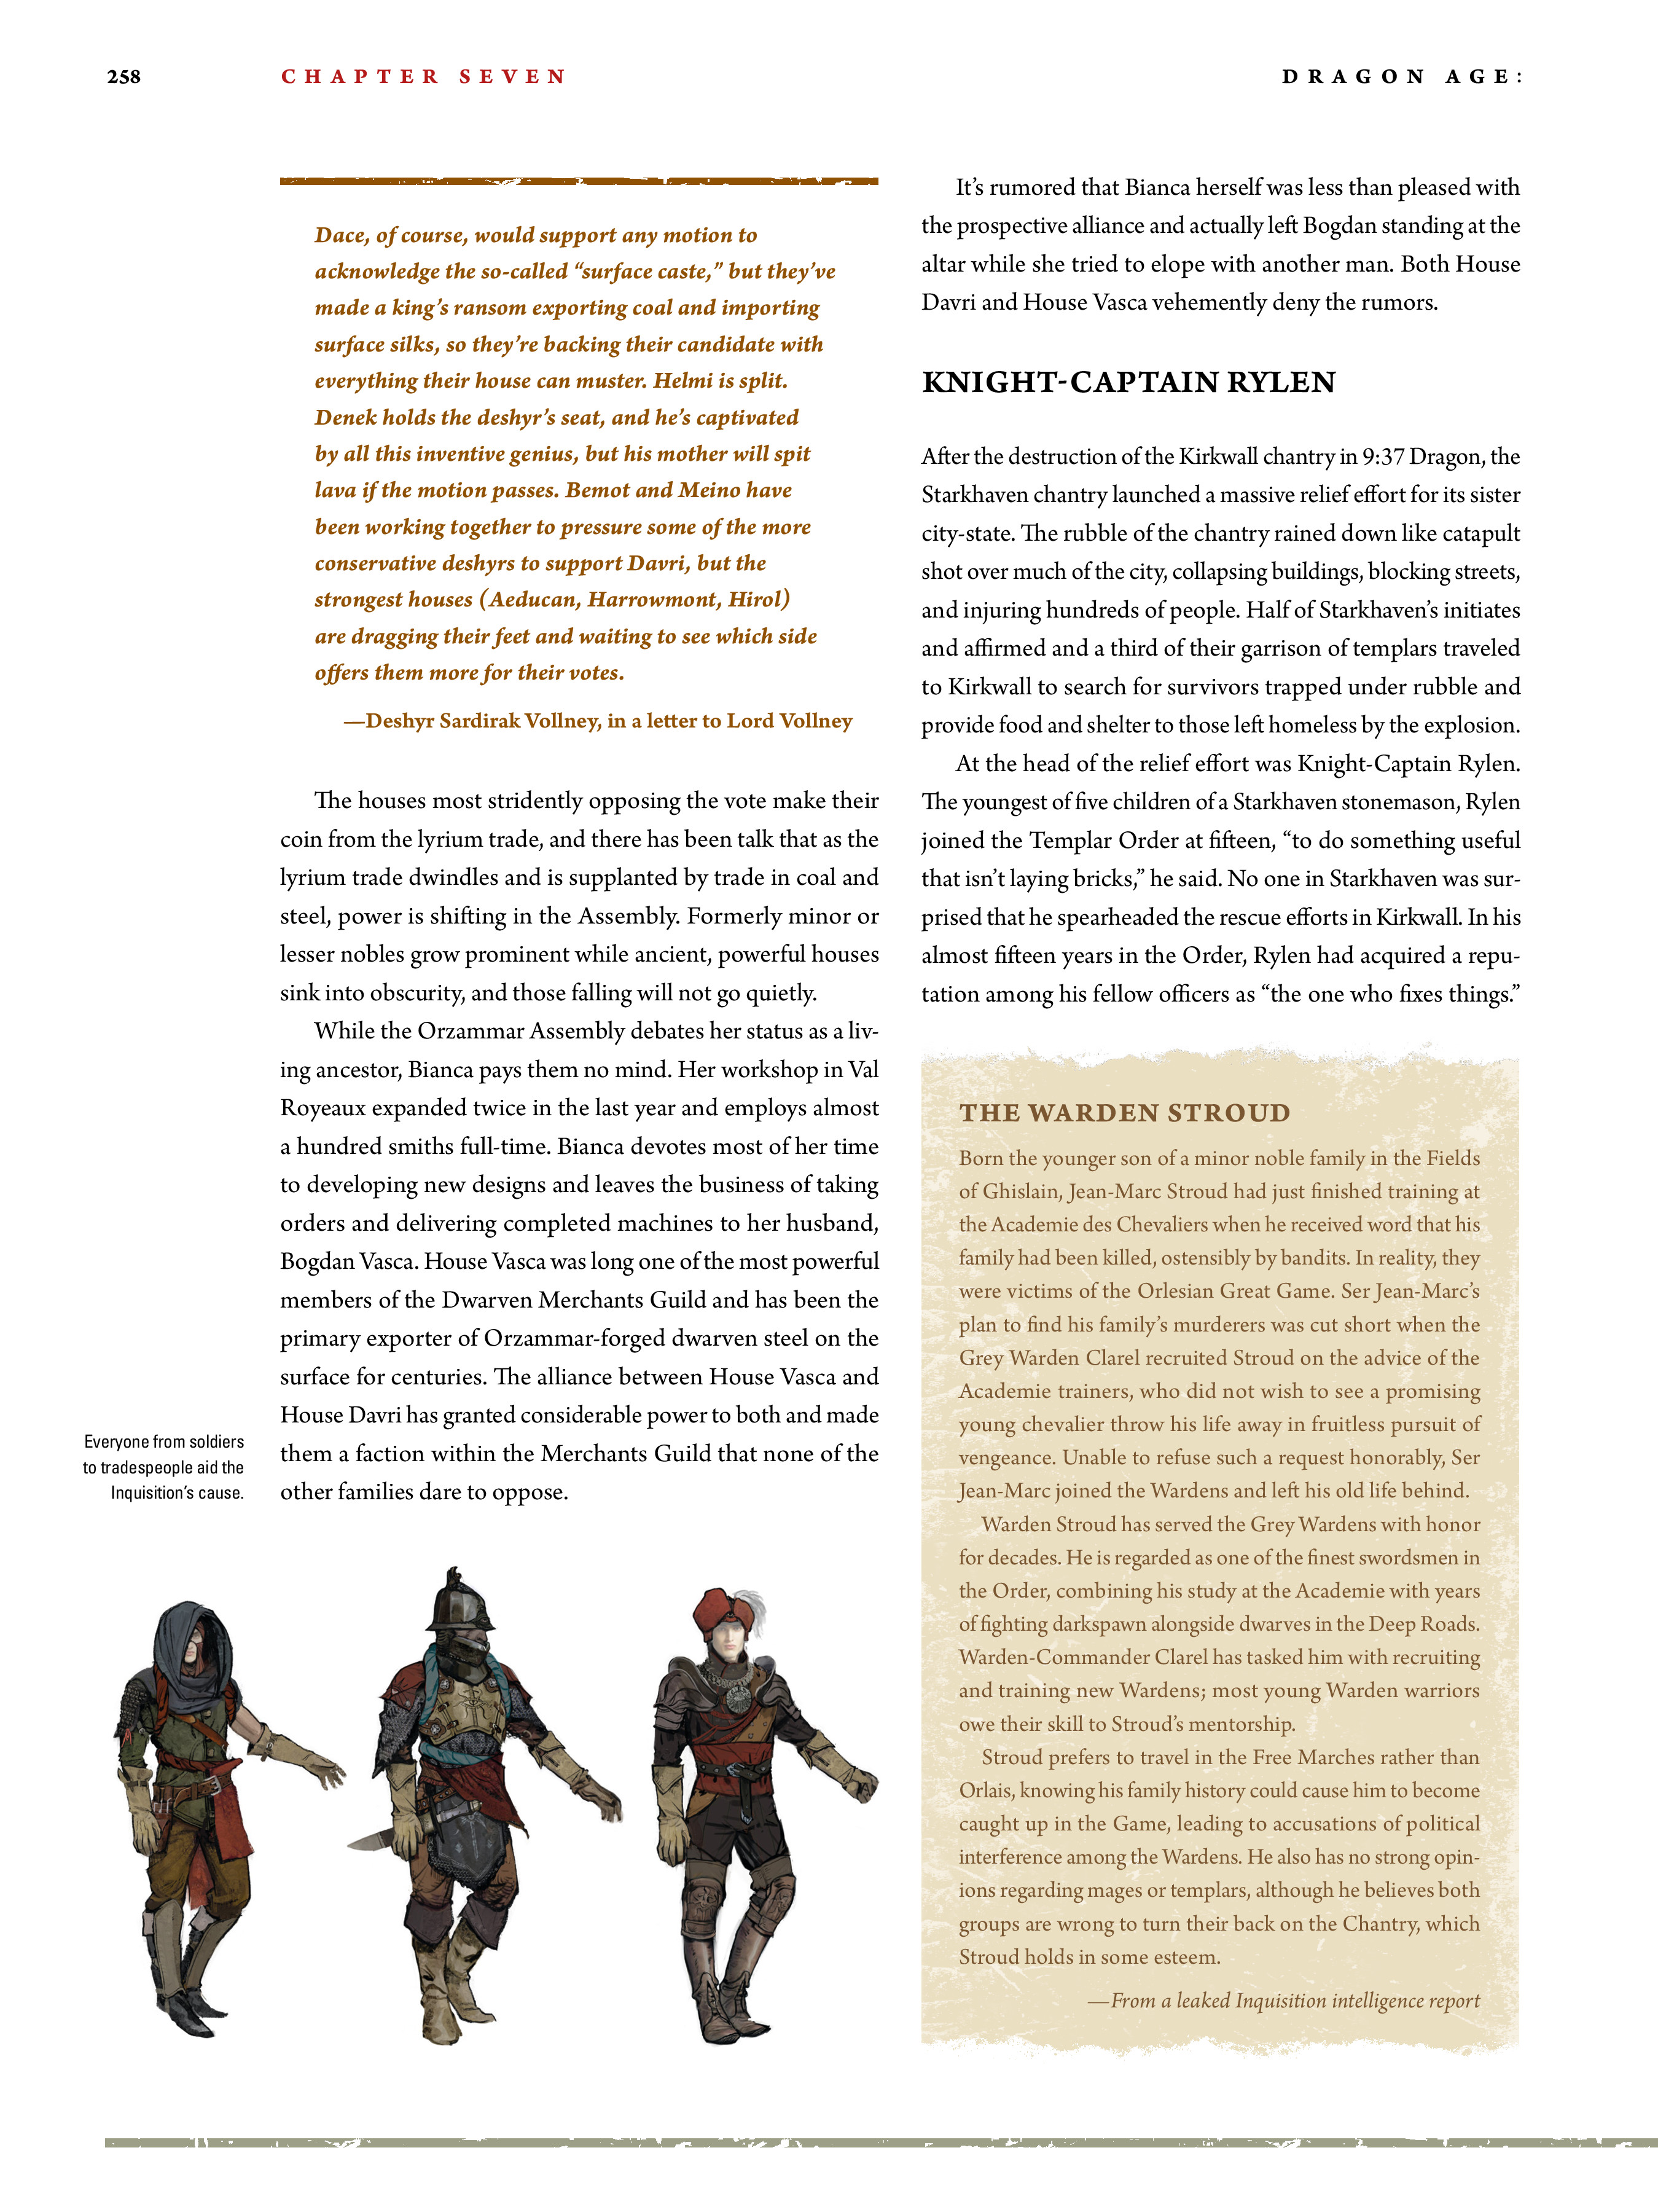 Read online Dragon Age: The World of Thedas comic -  Issue # TPB 2 - 251